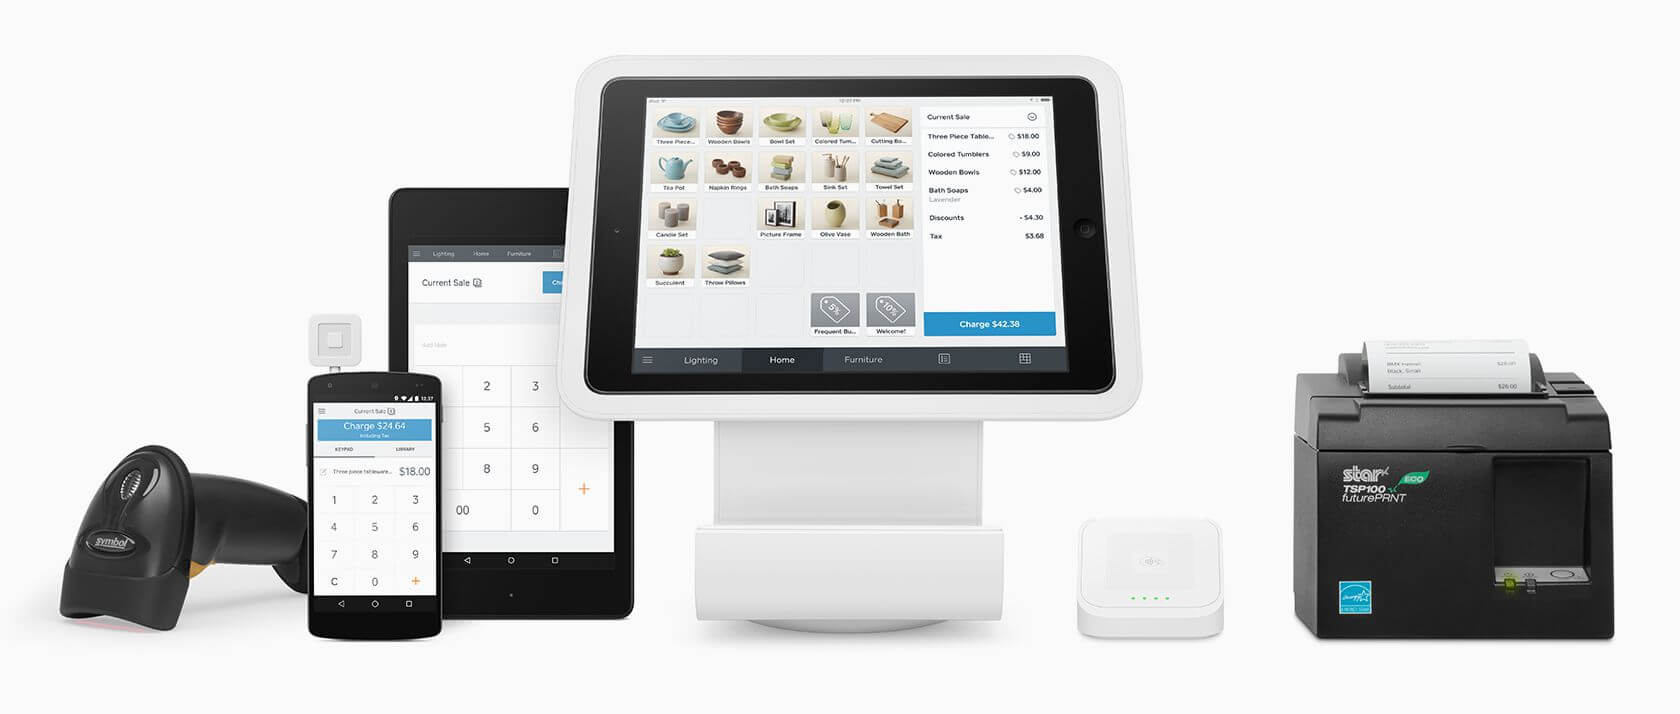 Bigcommerce supports official integrations with point-of-sale hardware provided by companies like Square; Squarespace does not.